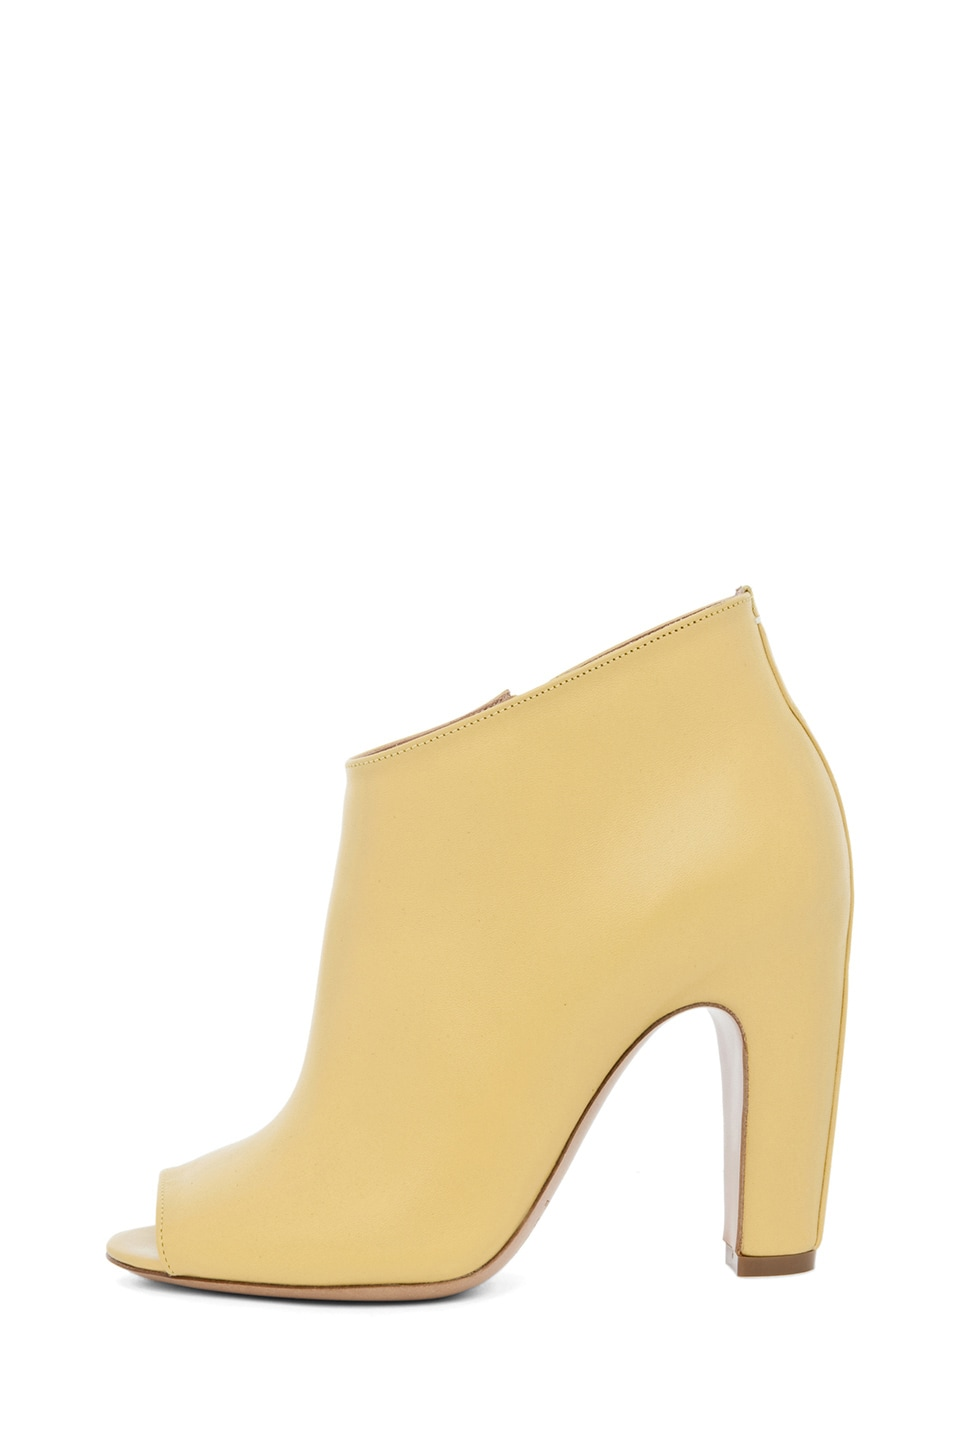 Image 1 of Maison Margiela Curved Heel Bootie in Lime